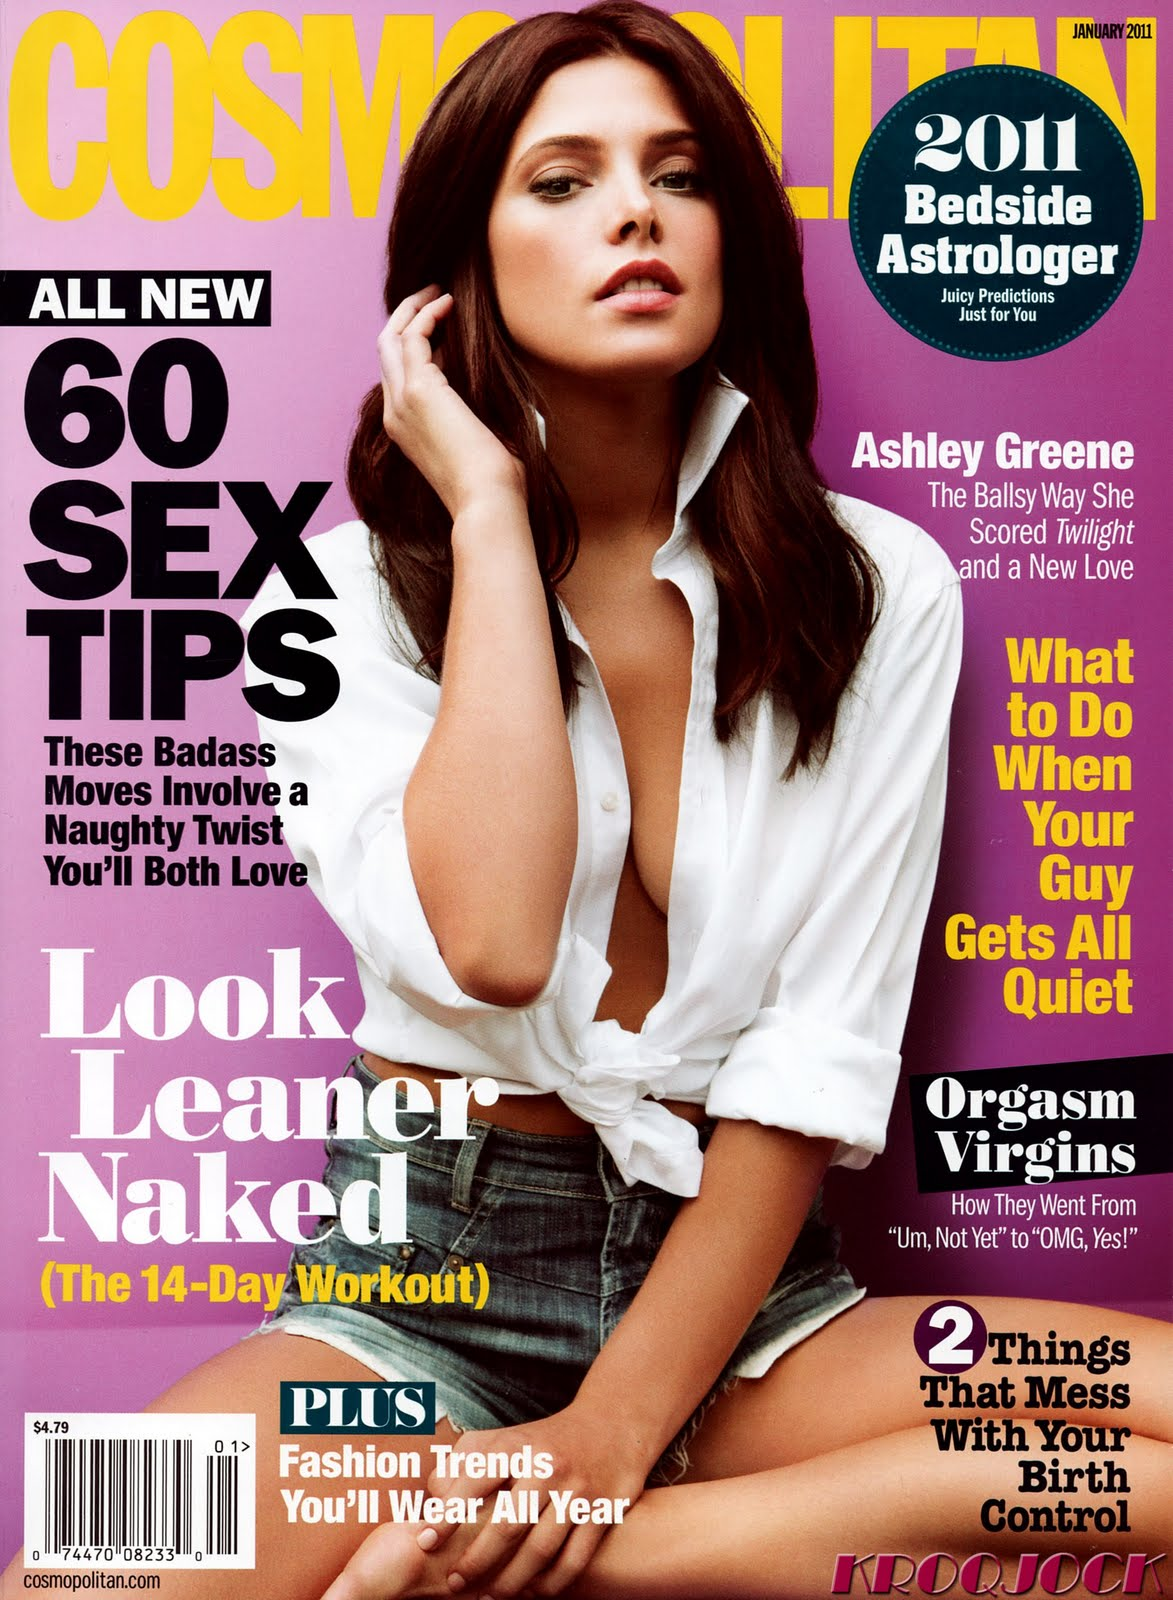 http://2.bp.blogspot.com/-utxrU_oke-s/TXZH6dt88tI/AAAAAAAACfE/mQiNLir7S2Y/s1600/Celebutopia_NET.Ashley_Greene.COSMOPOLITAN.January_2011.Scanned_by_KROQJOCK.HQ_.1.jpg